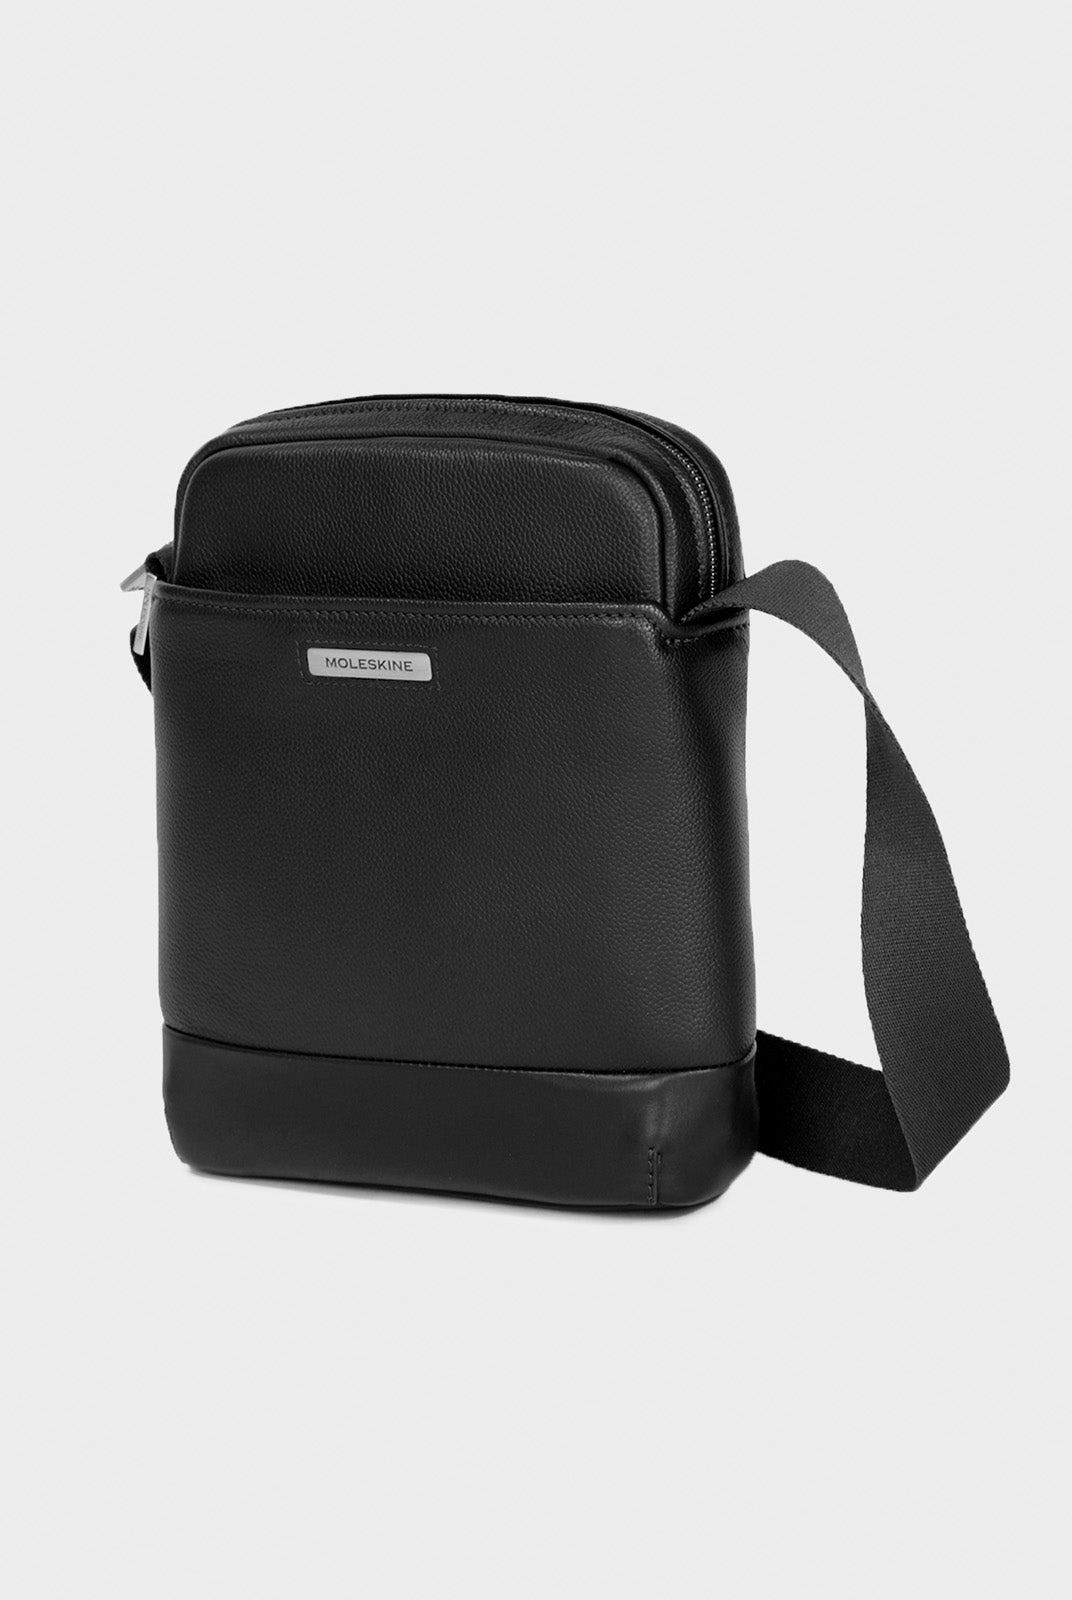 Moleskine - Match Leather Crossover Bag - Black